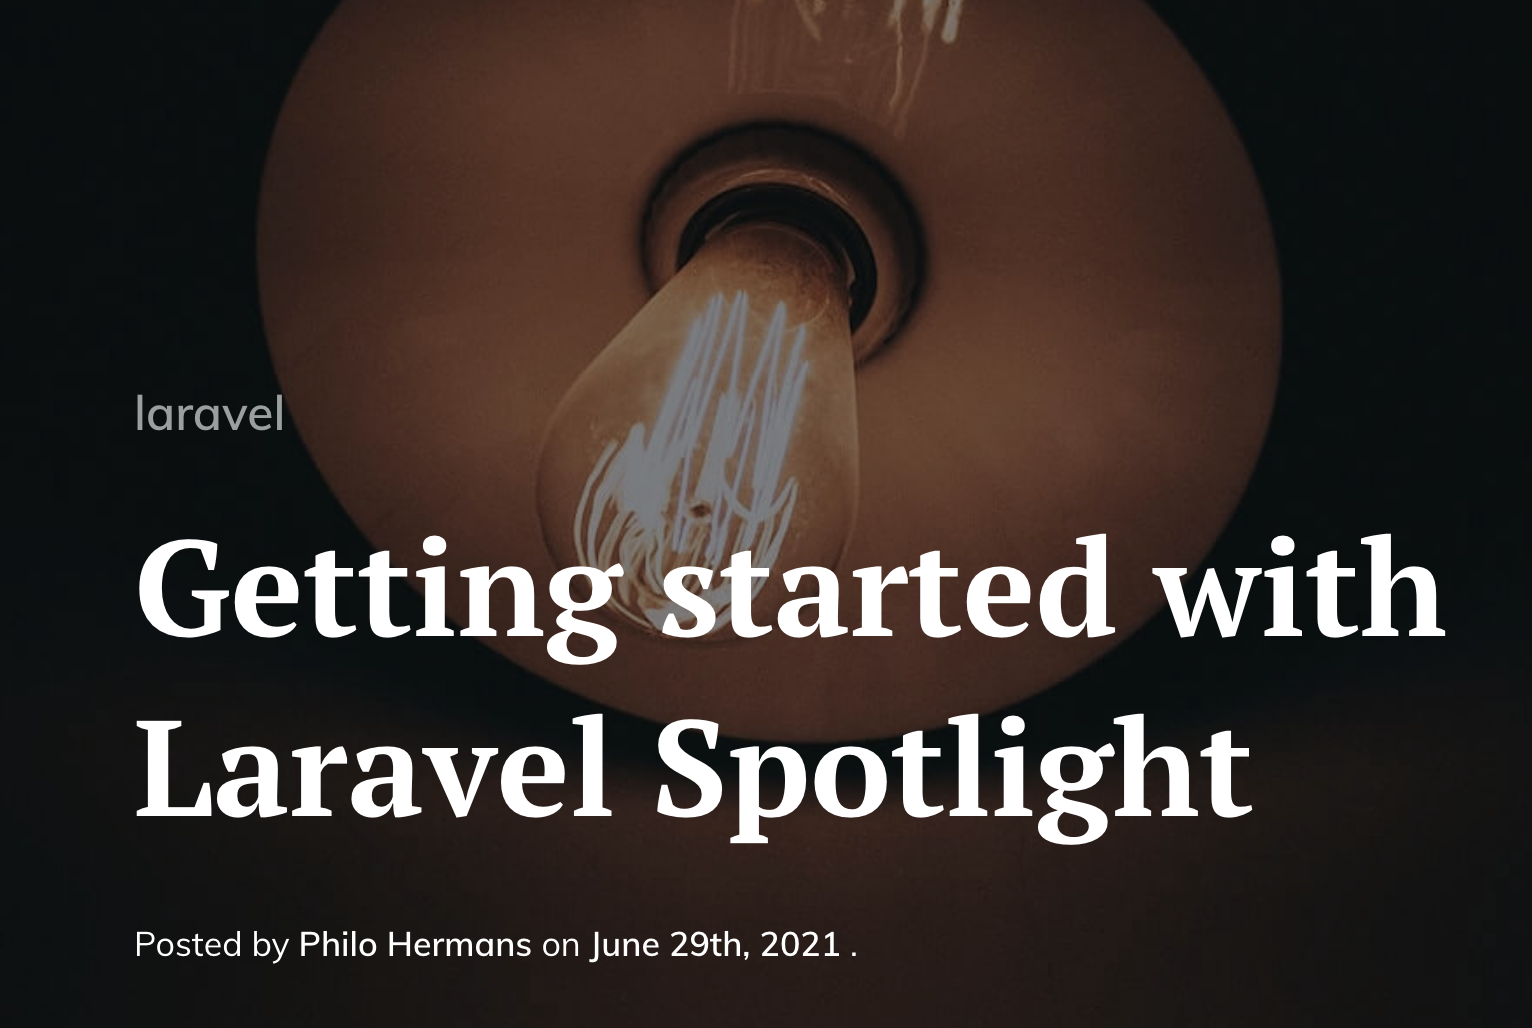 Getting started with Laravel Spotlight - Post Image